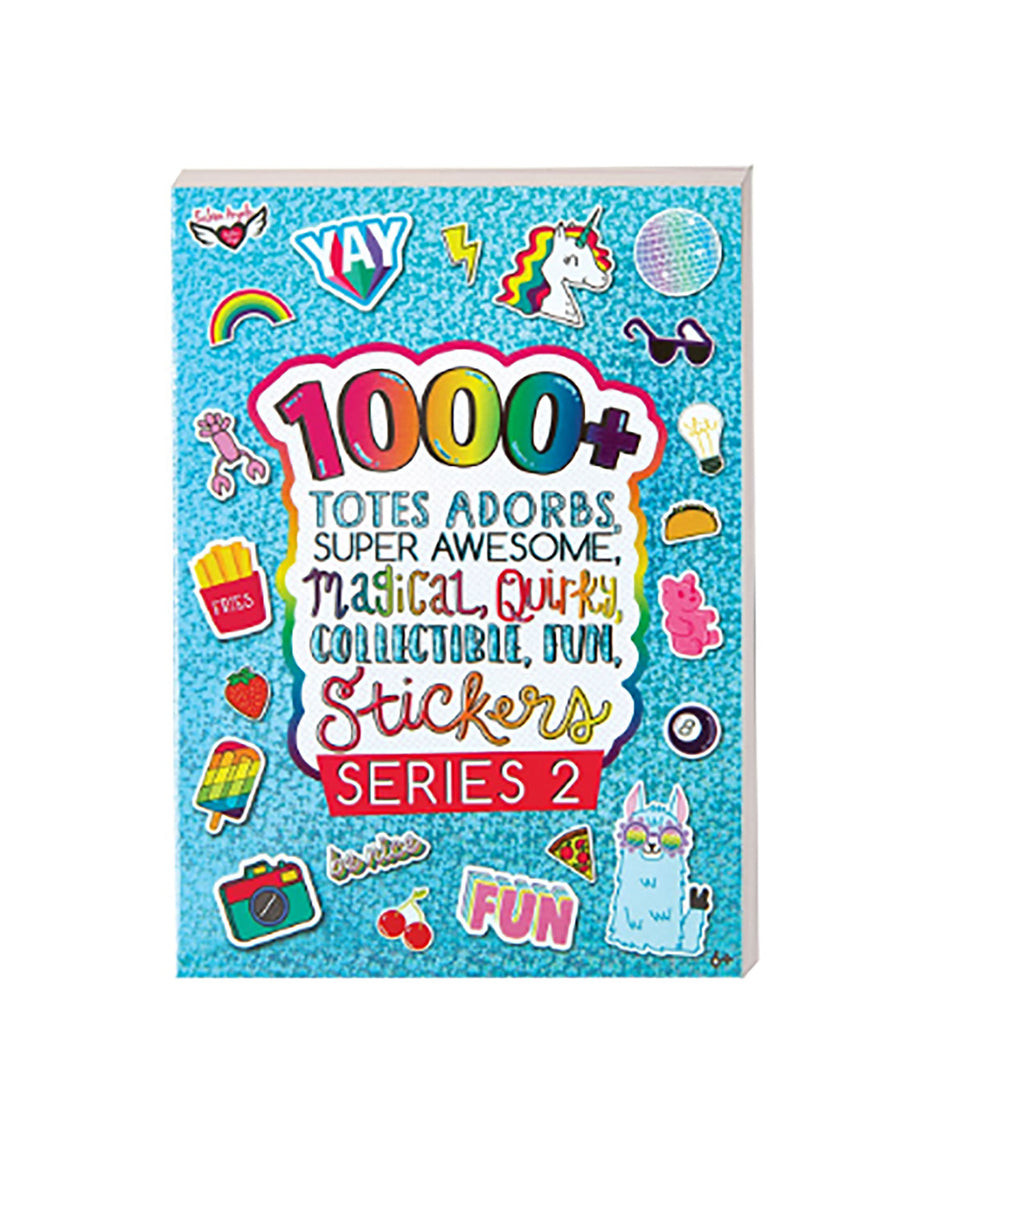 Fashion Angels 1000 Totes Adorbs Sticker Book